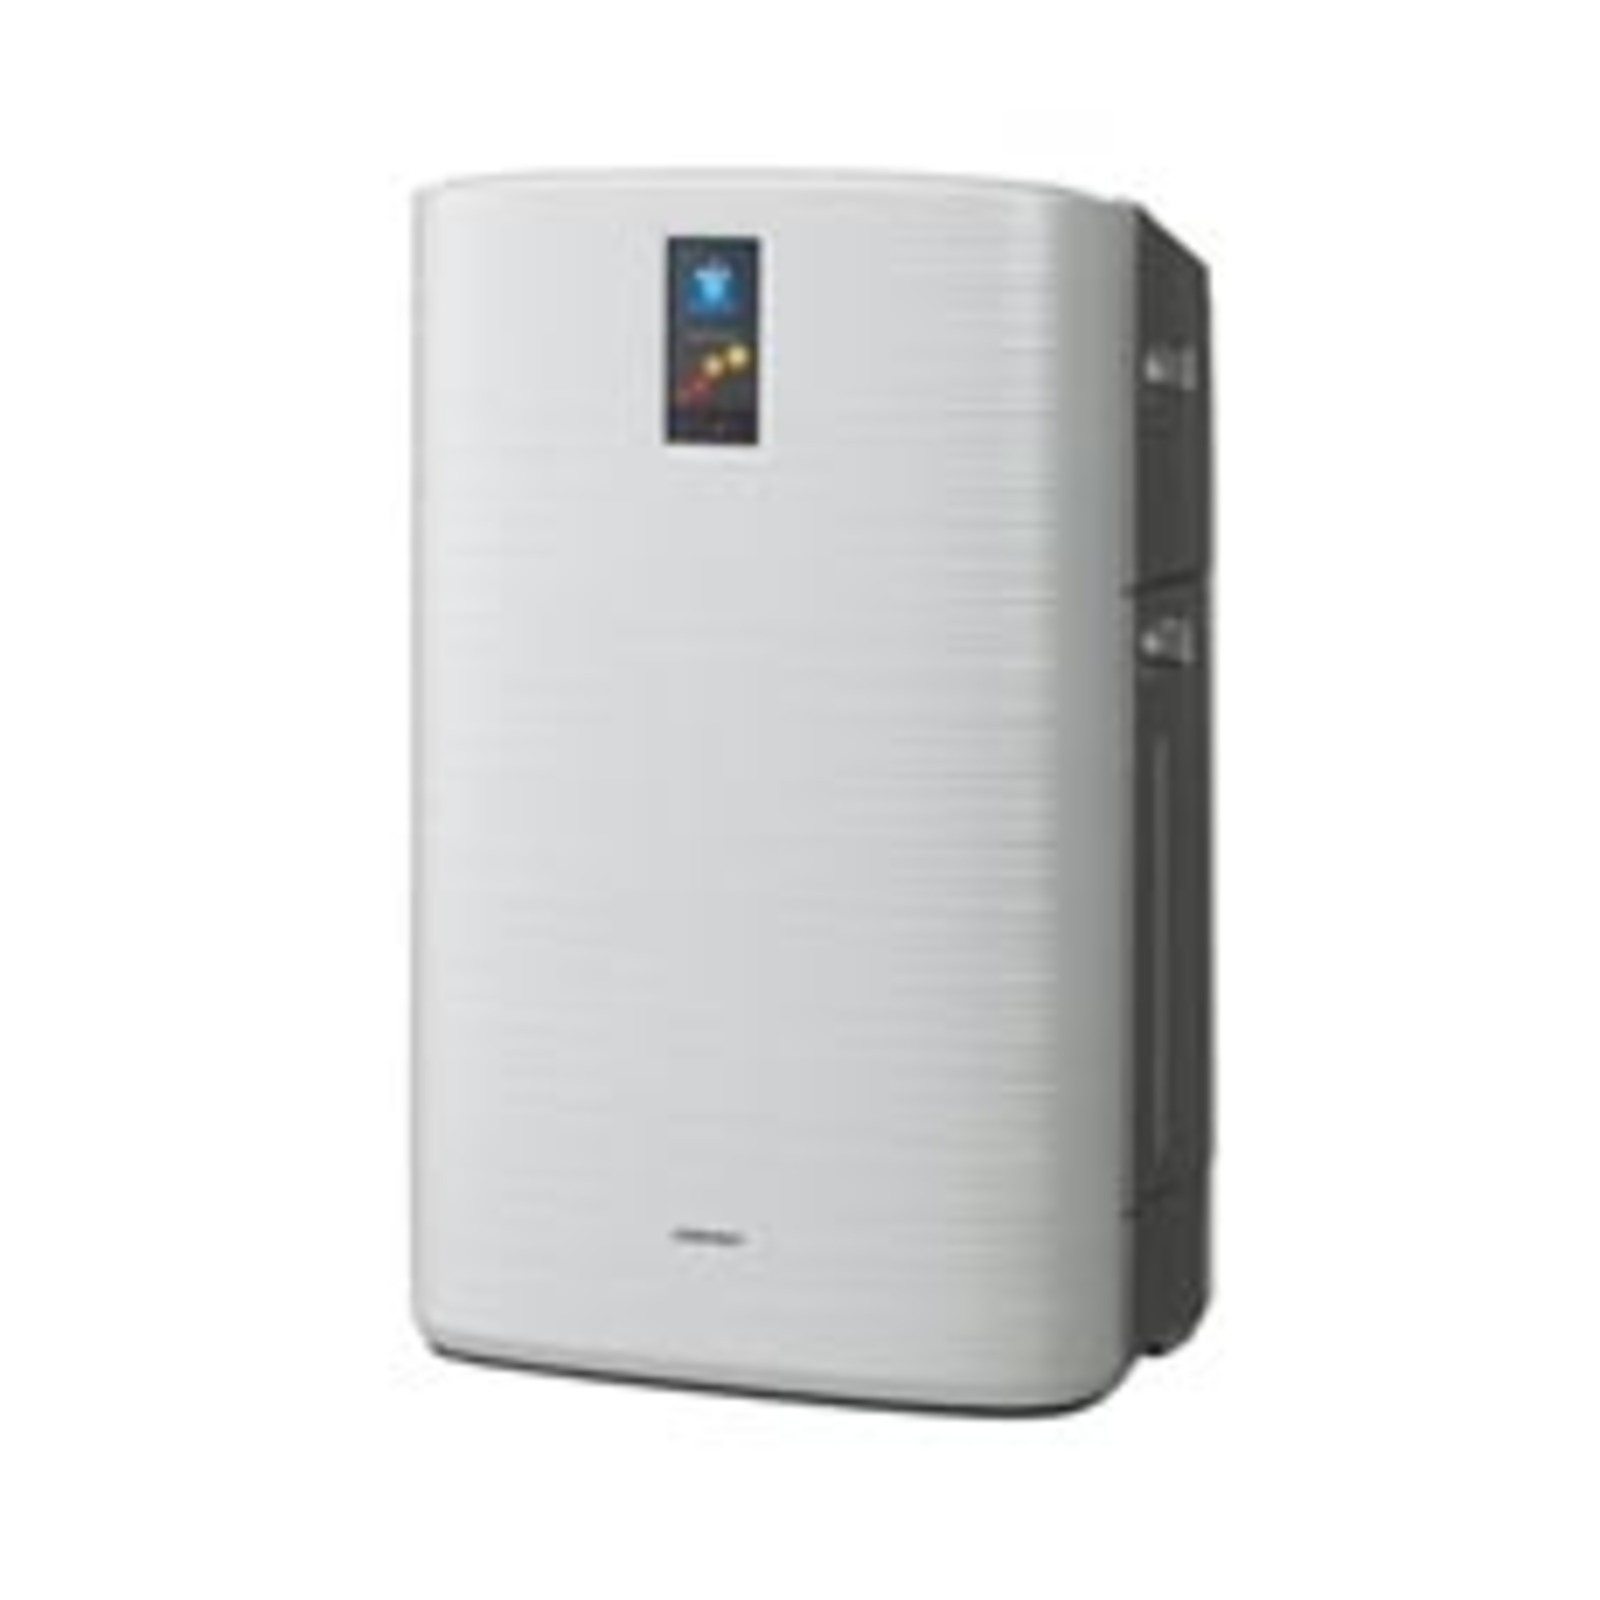 Sharp Plasmacluster Air Purifier with Humidfier Cool Hunting #446076